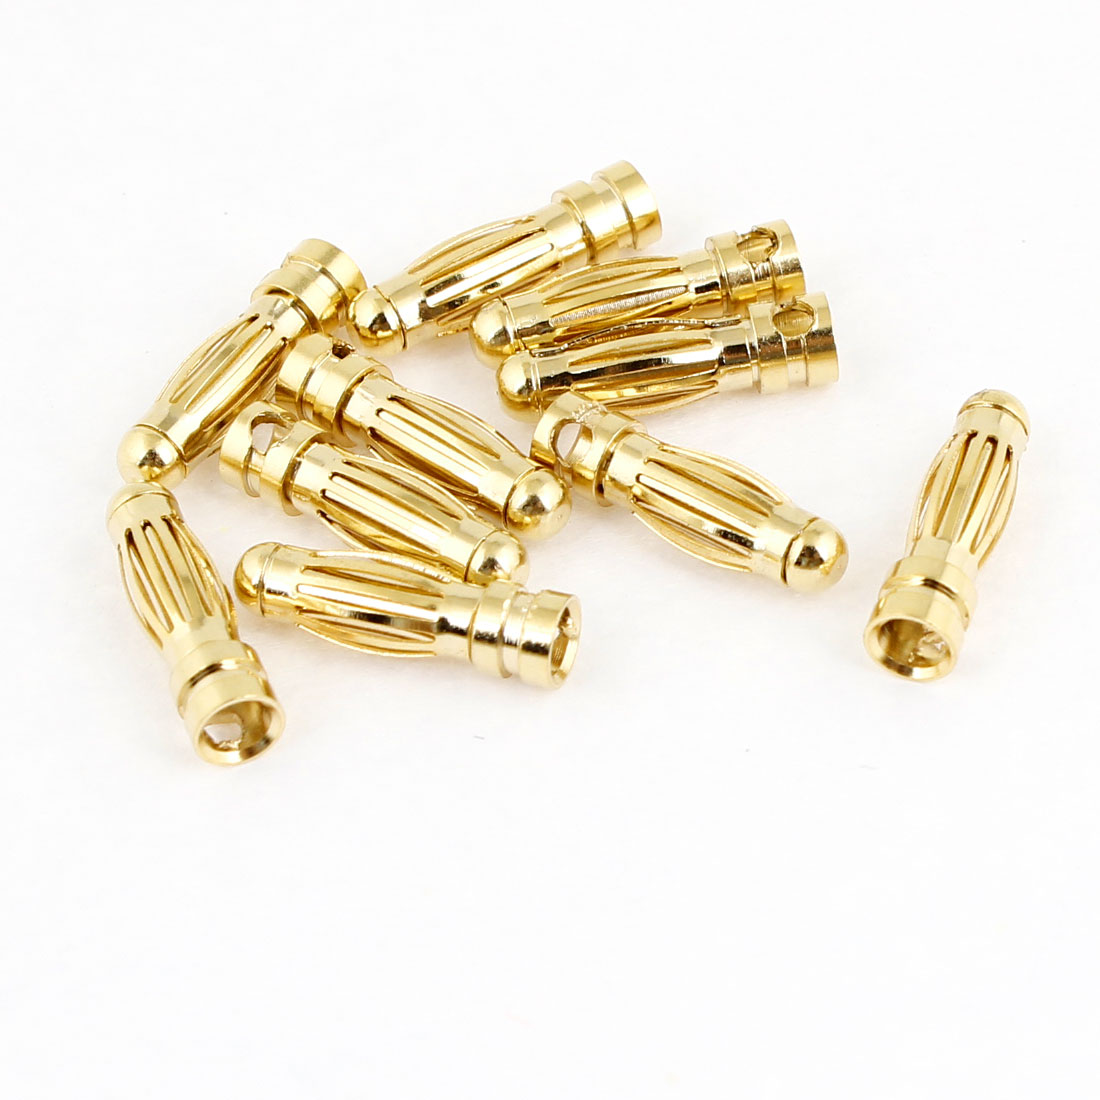 10 Pcs RC Model Li-Po Battery Male Banana Connector Plug 3mm Dia